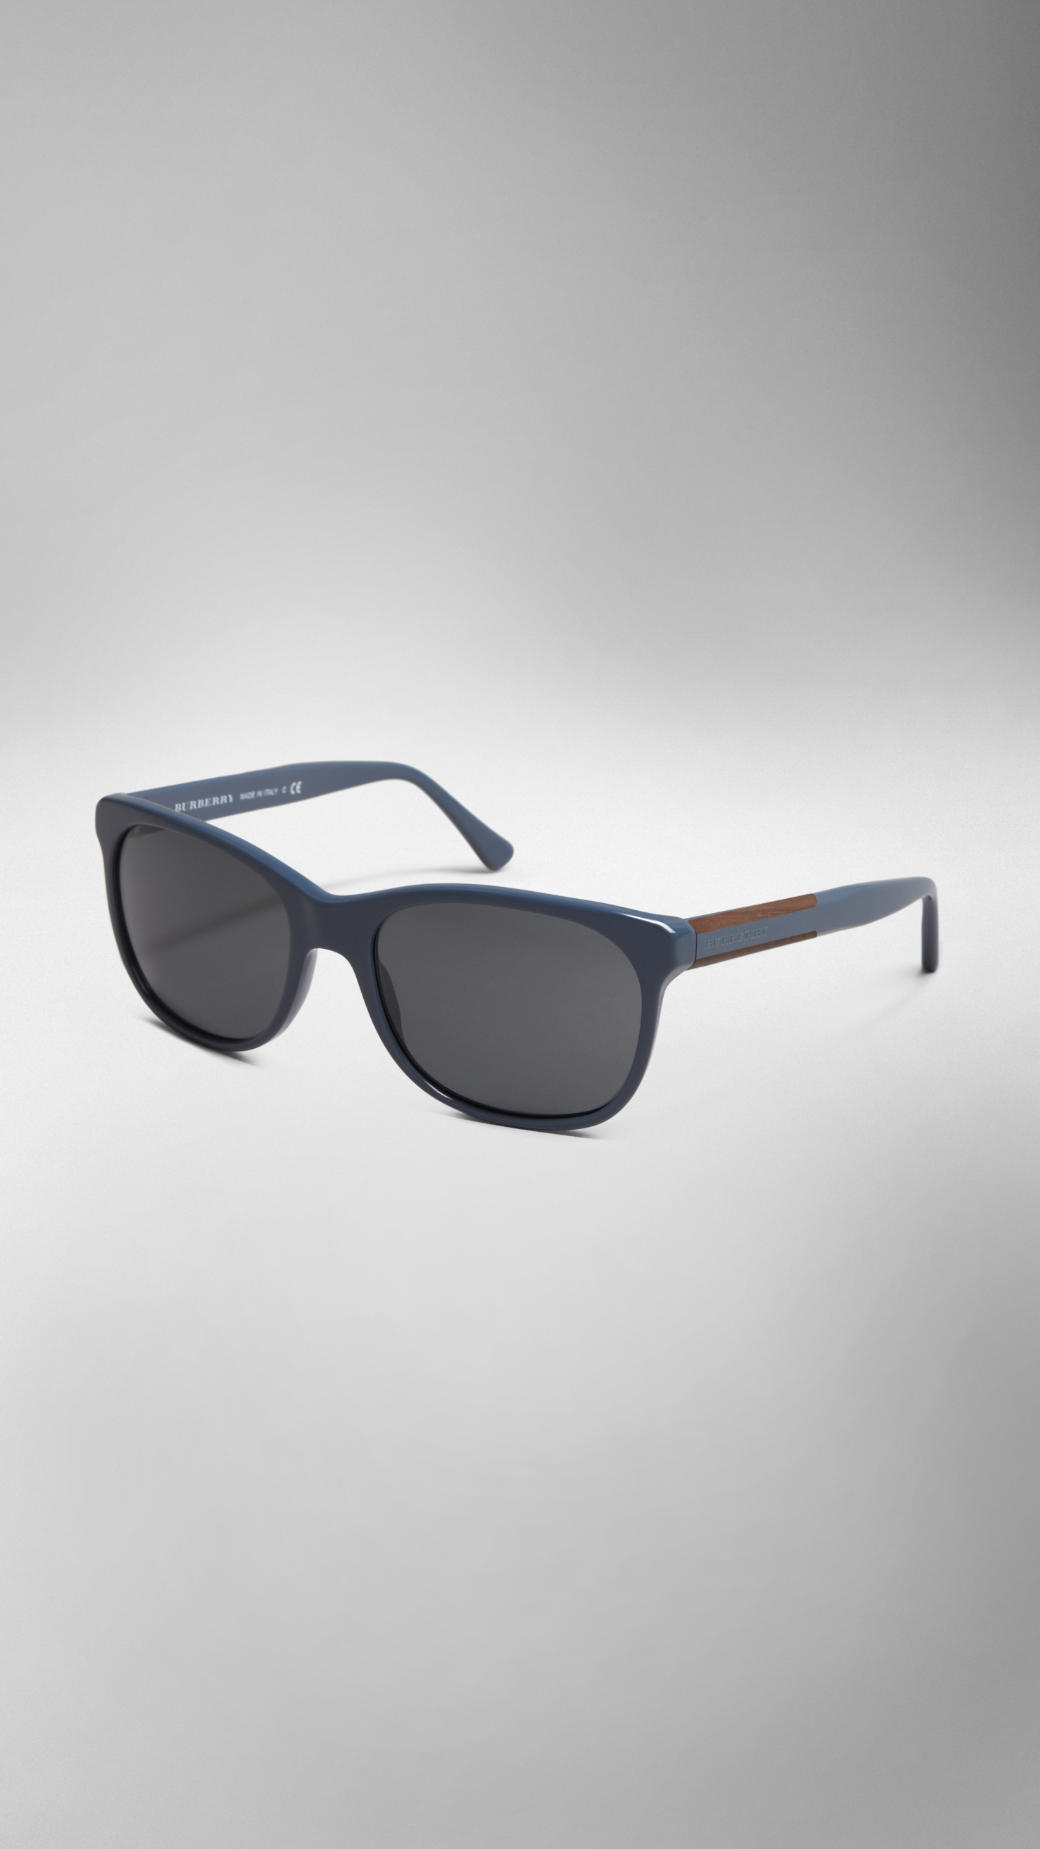 a7223b7a91f Lyst - Burberry Wood Detail Square Frame Sunglasses in Black for Men